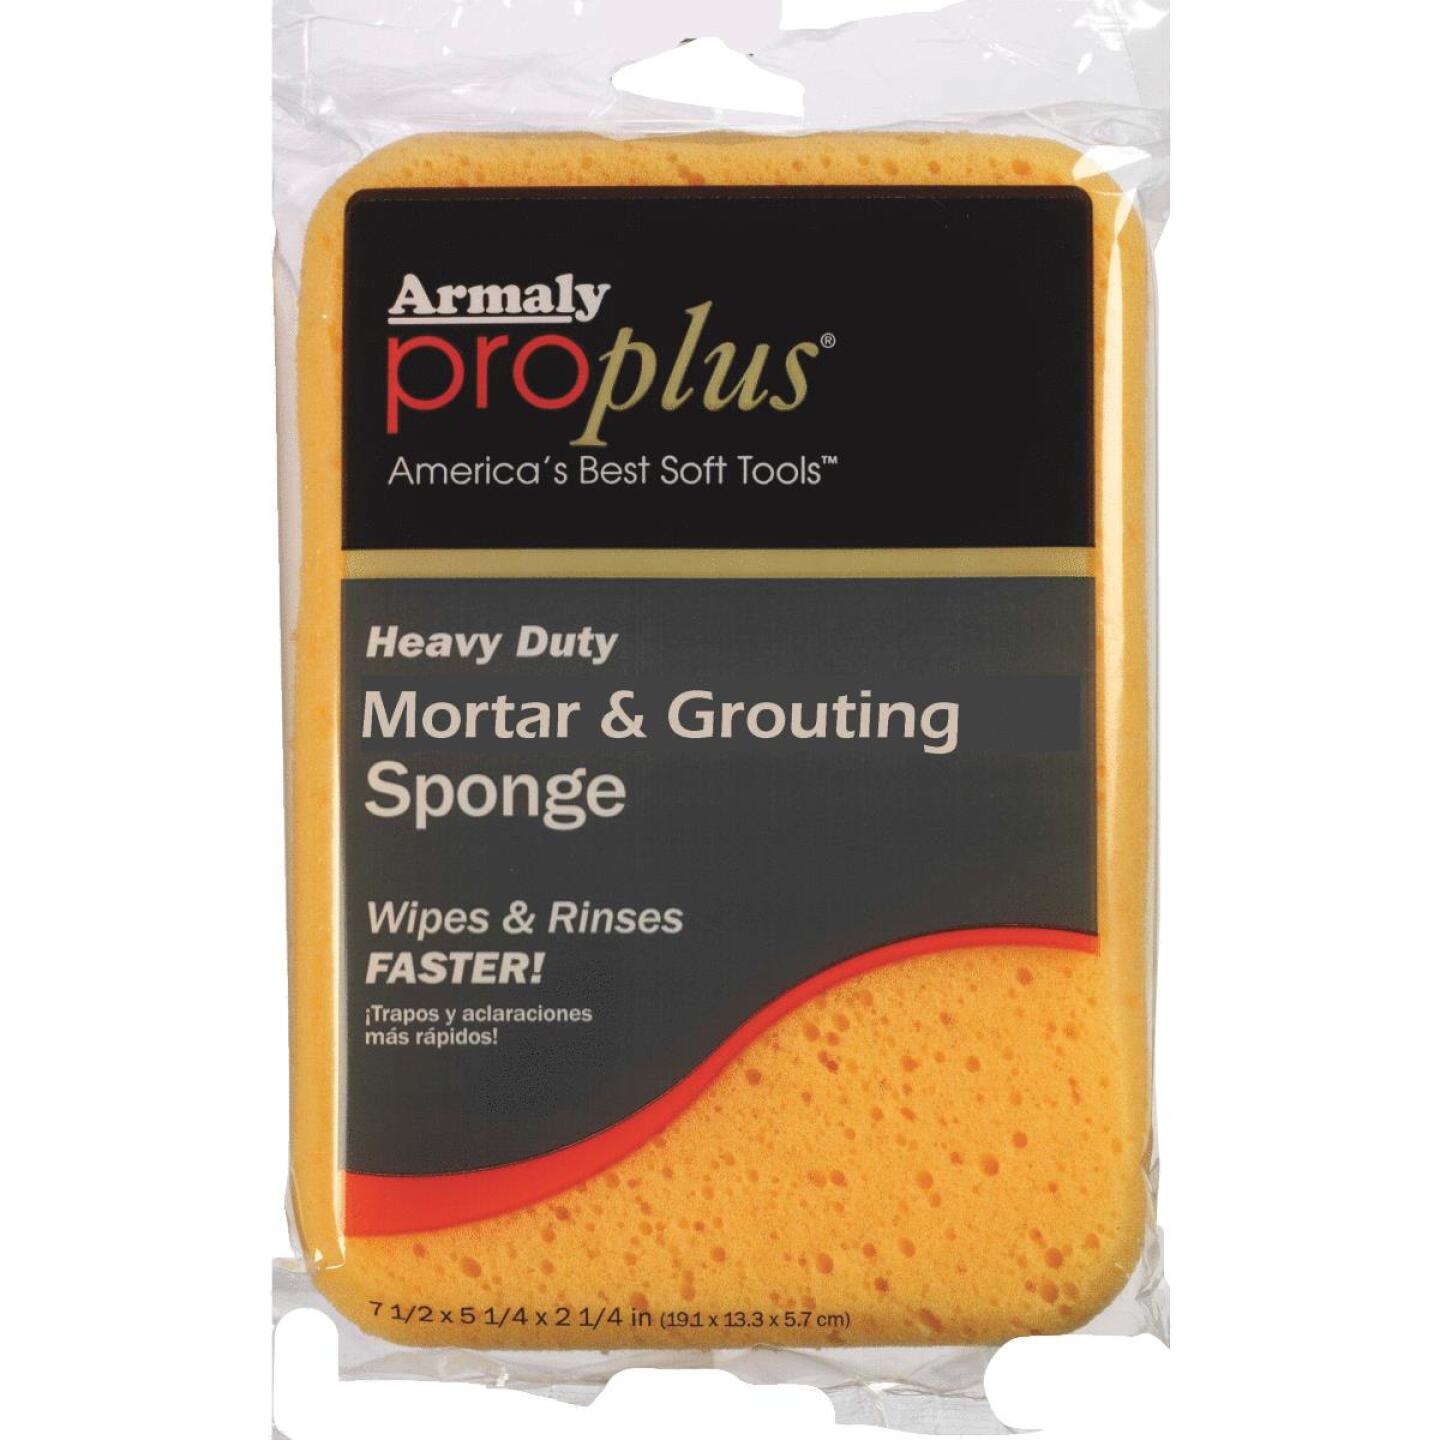 Armaly ProPlus Heavy Duty Grouting & Concrete Sponge Image 1